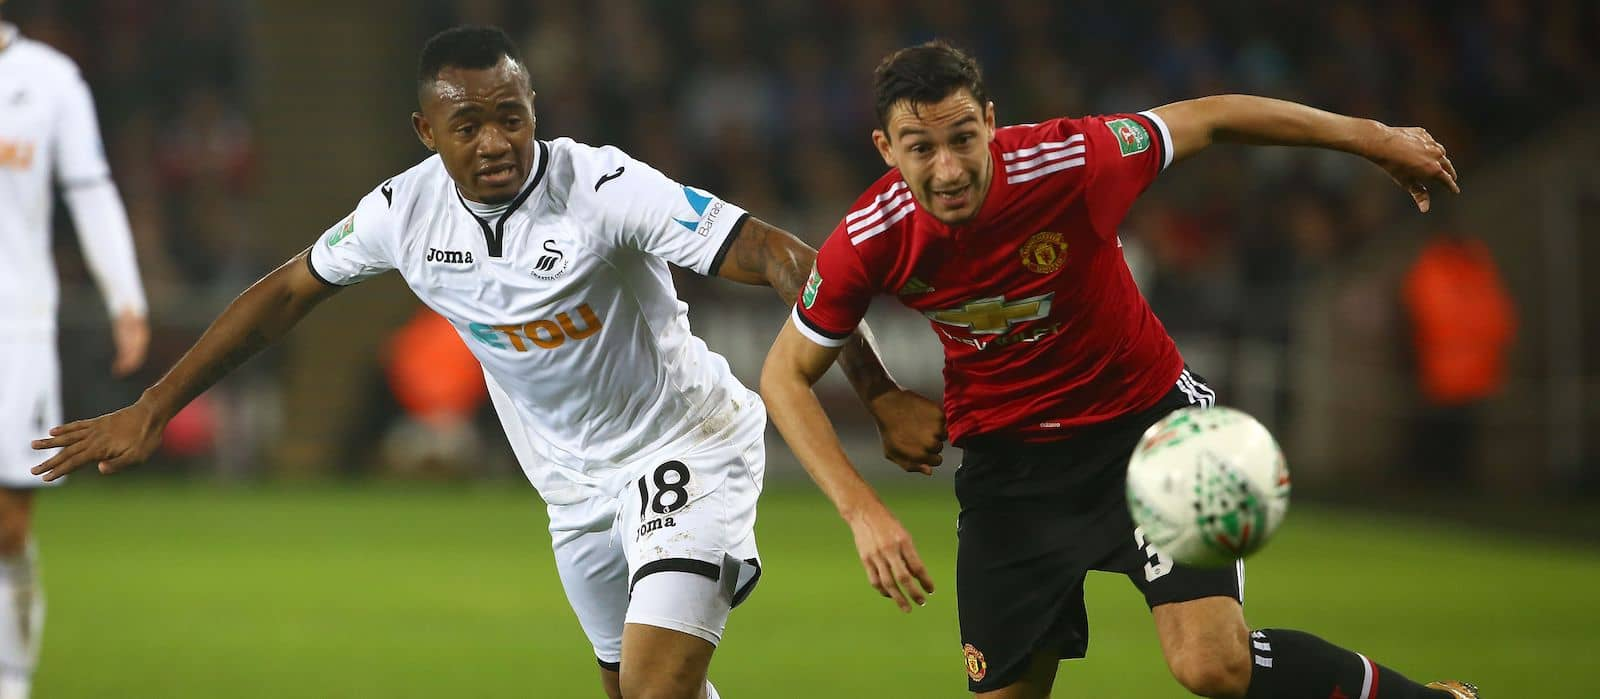 Inter Milan plan move for Manchester United's Matteo Darmian: report